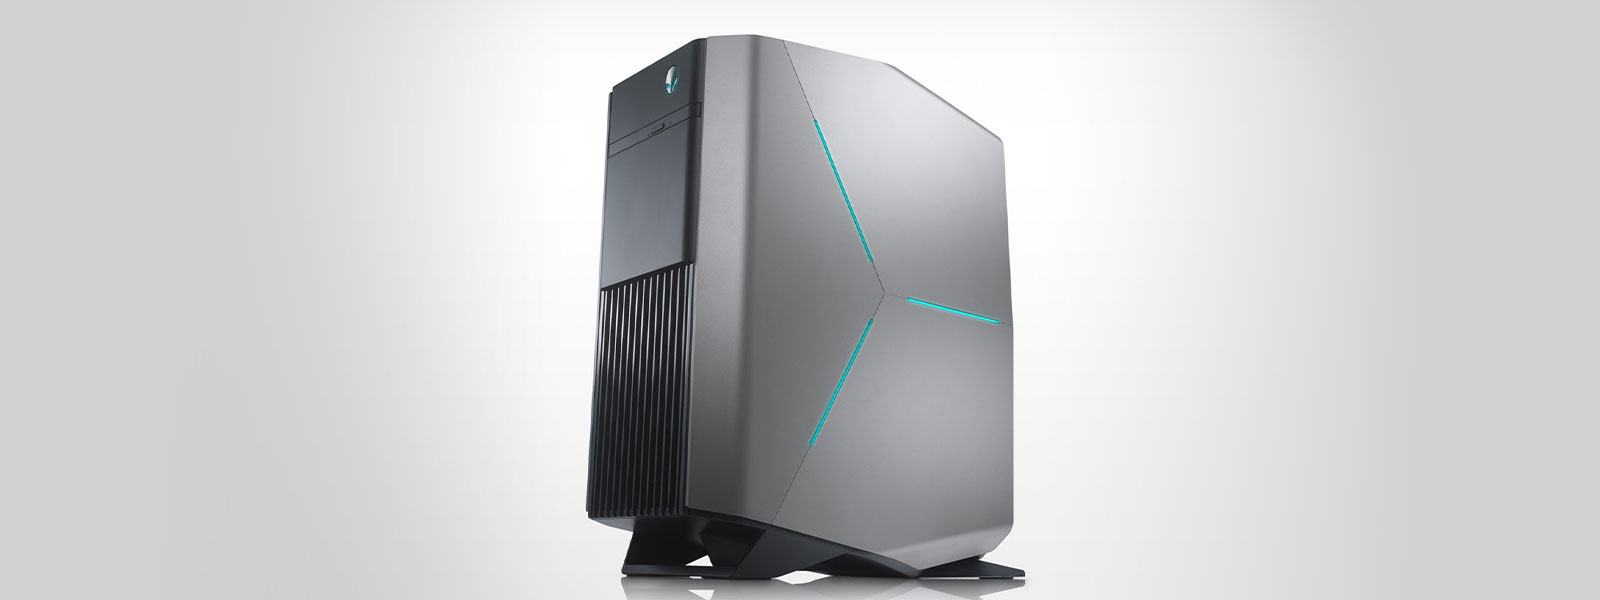 Side view of an Alienware desktop